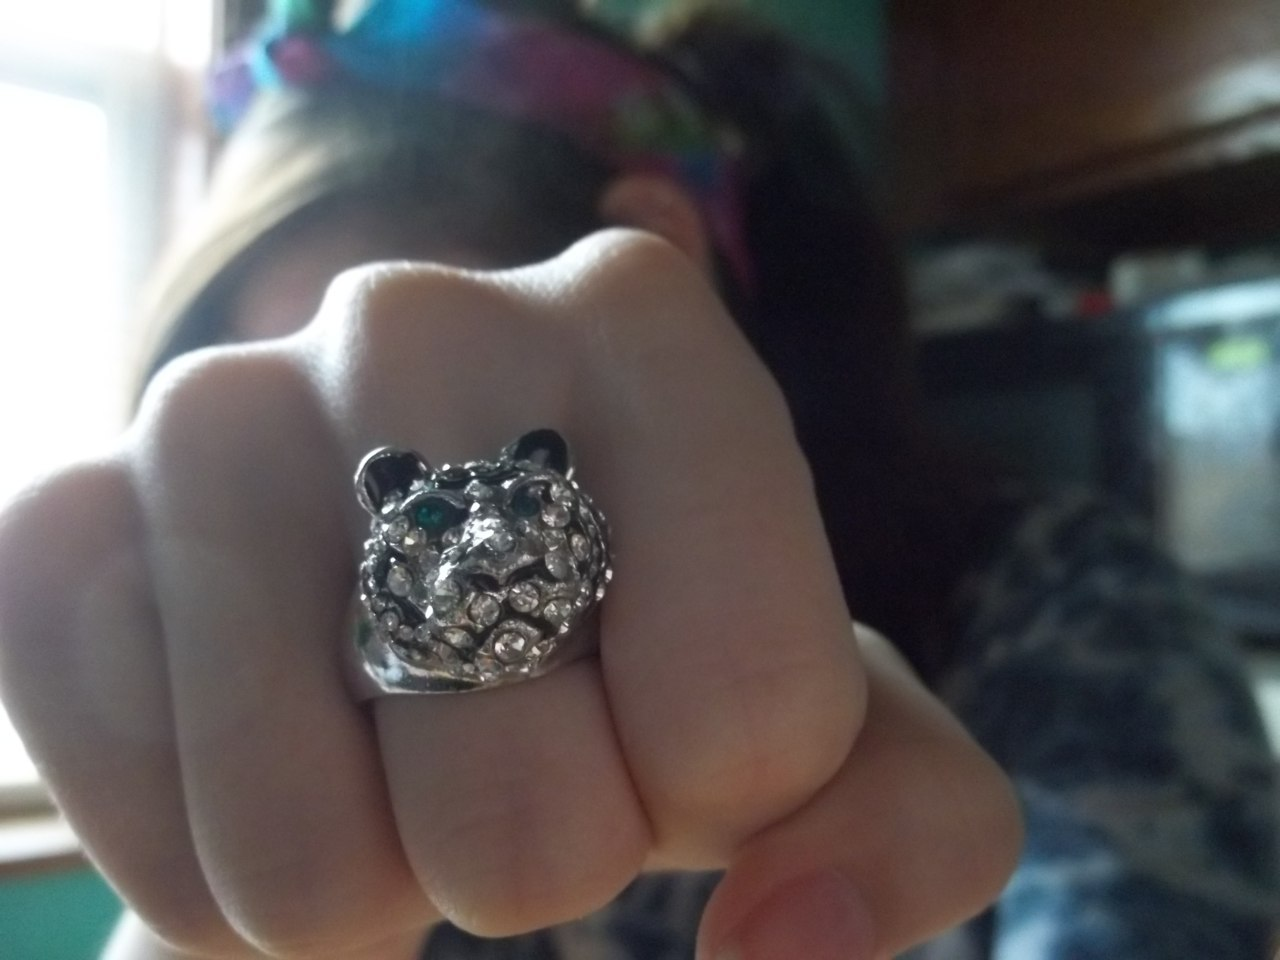 New tiger ring.